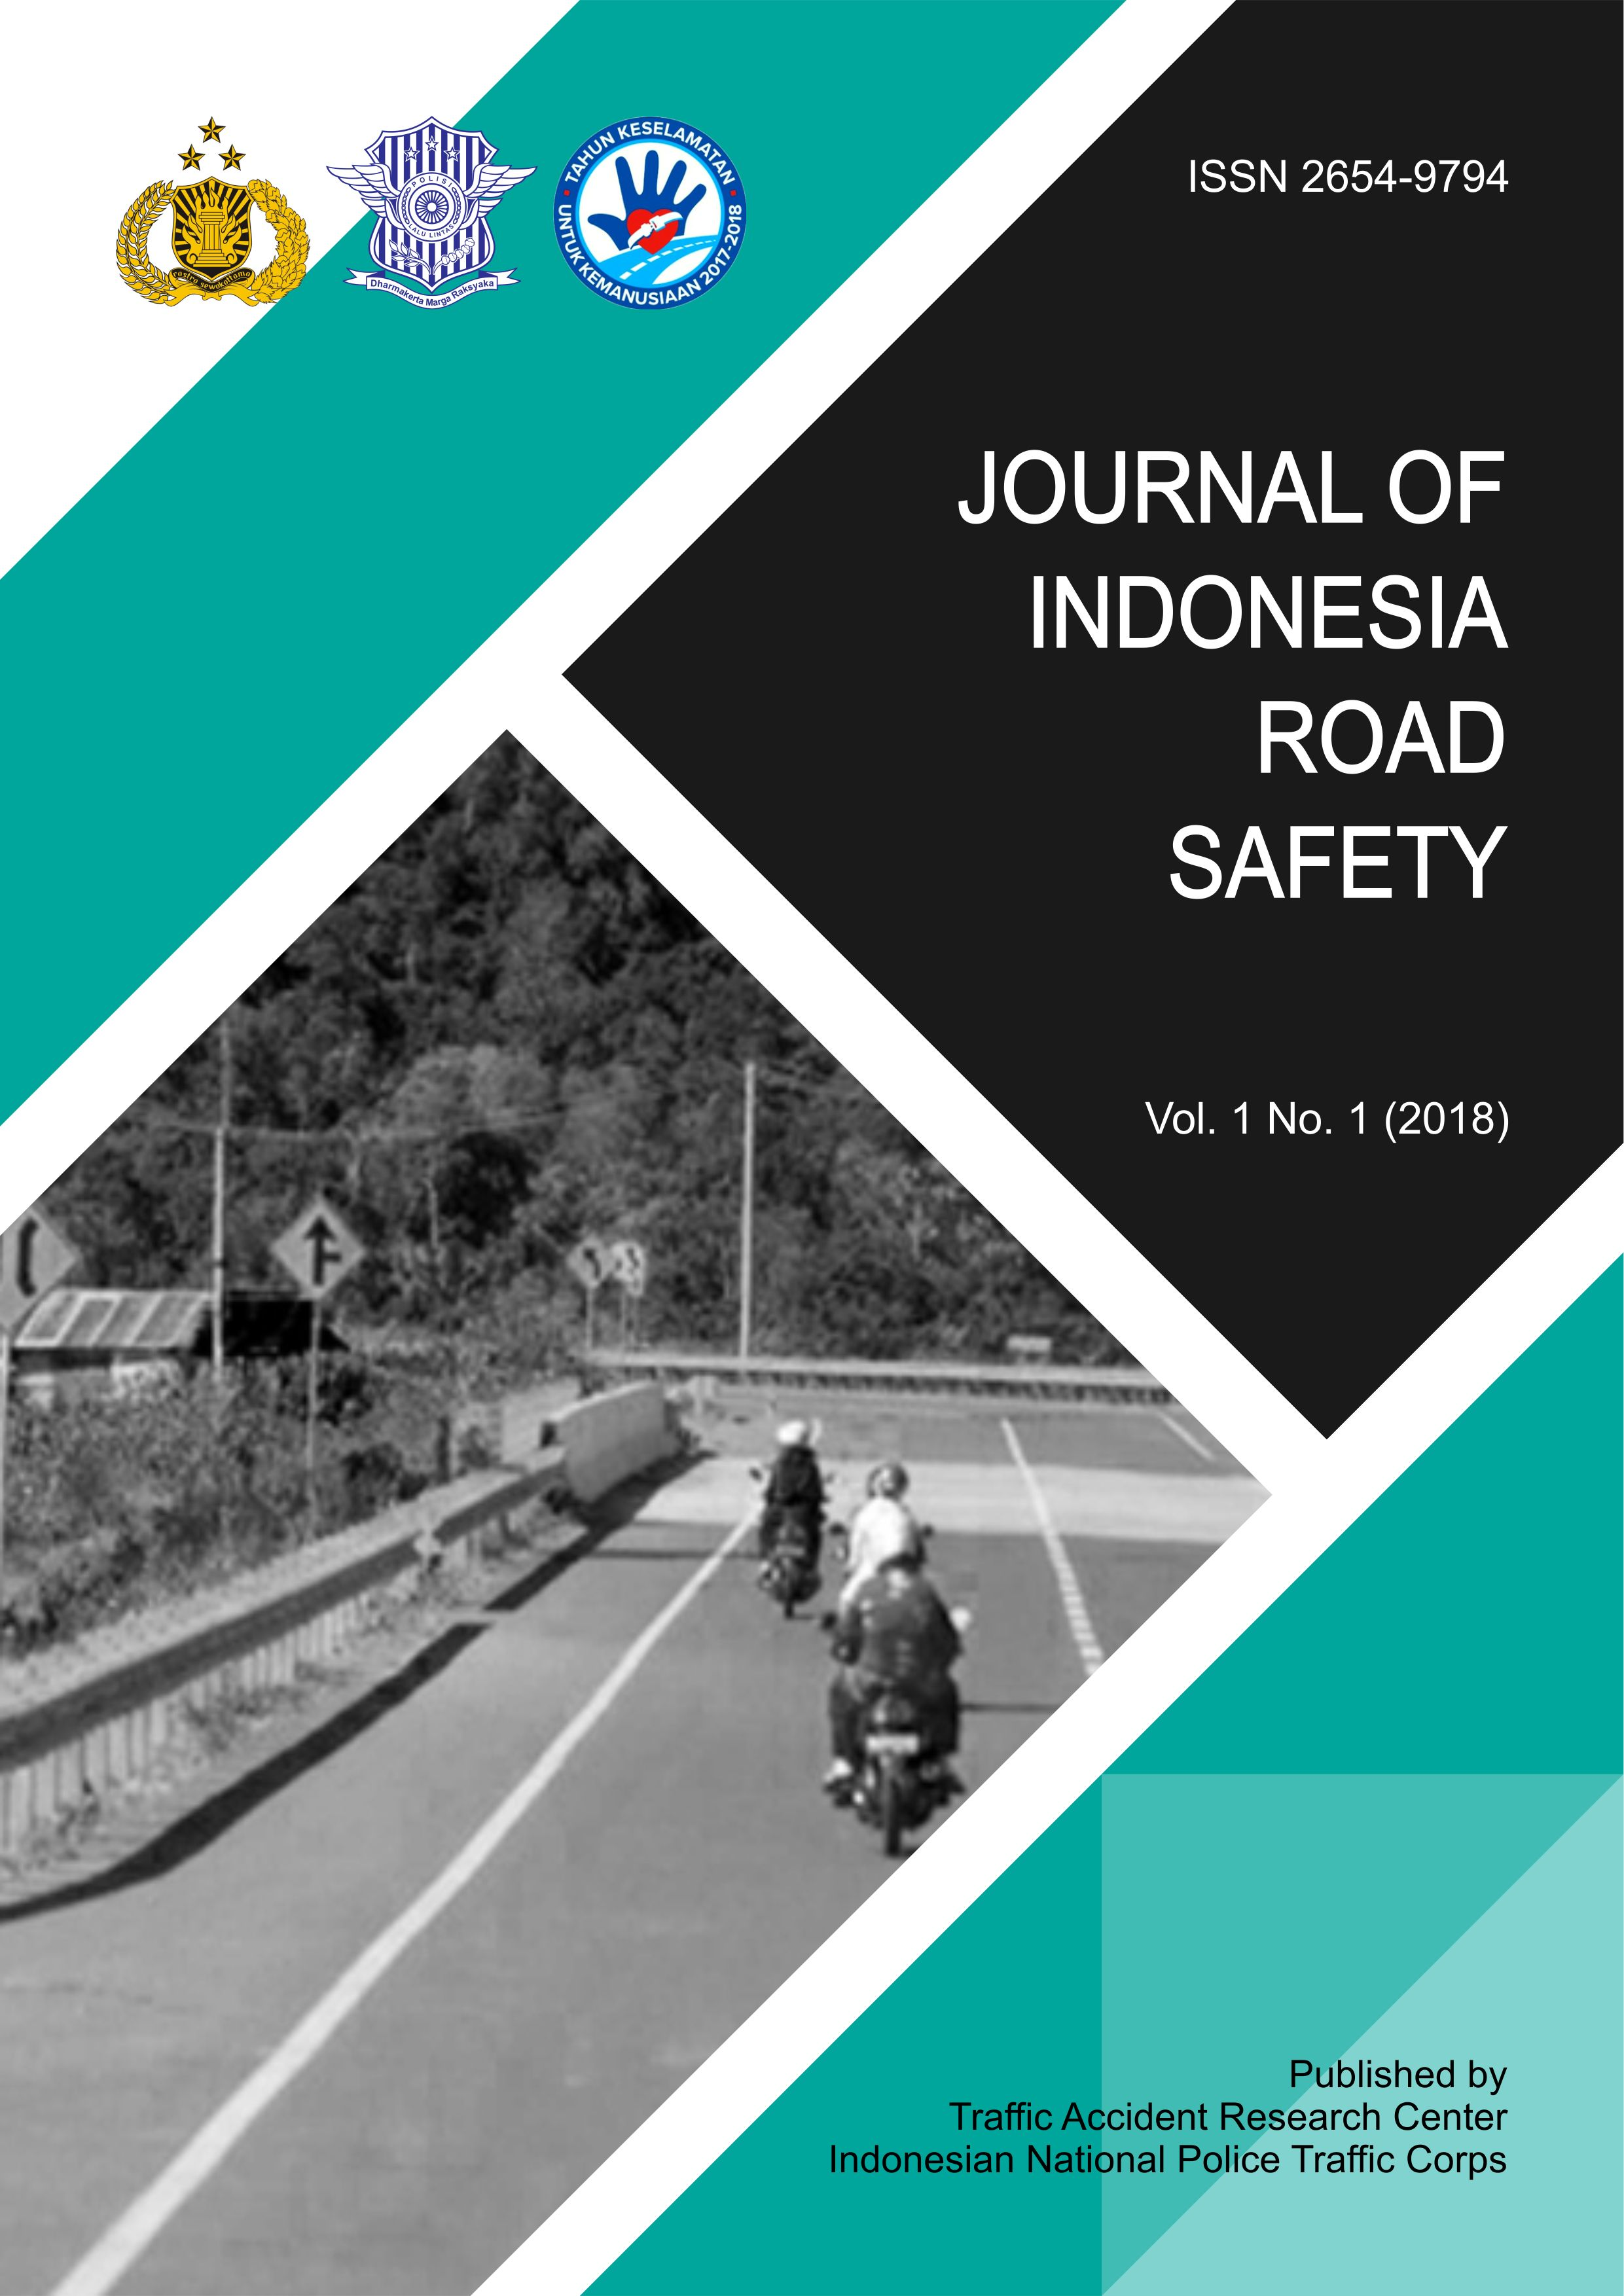 Published by Traffic Accident Research Center (TARC), Indonesian National Traffic Corps